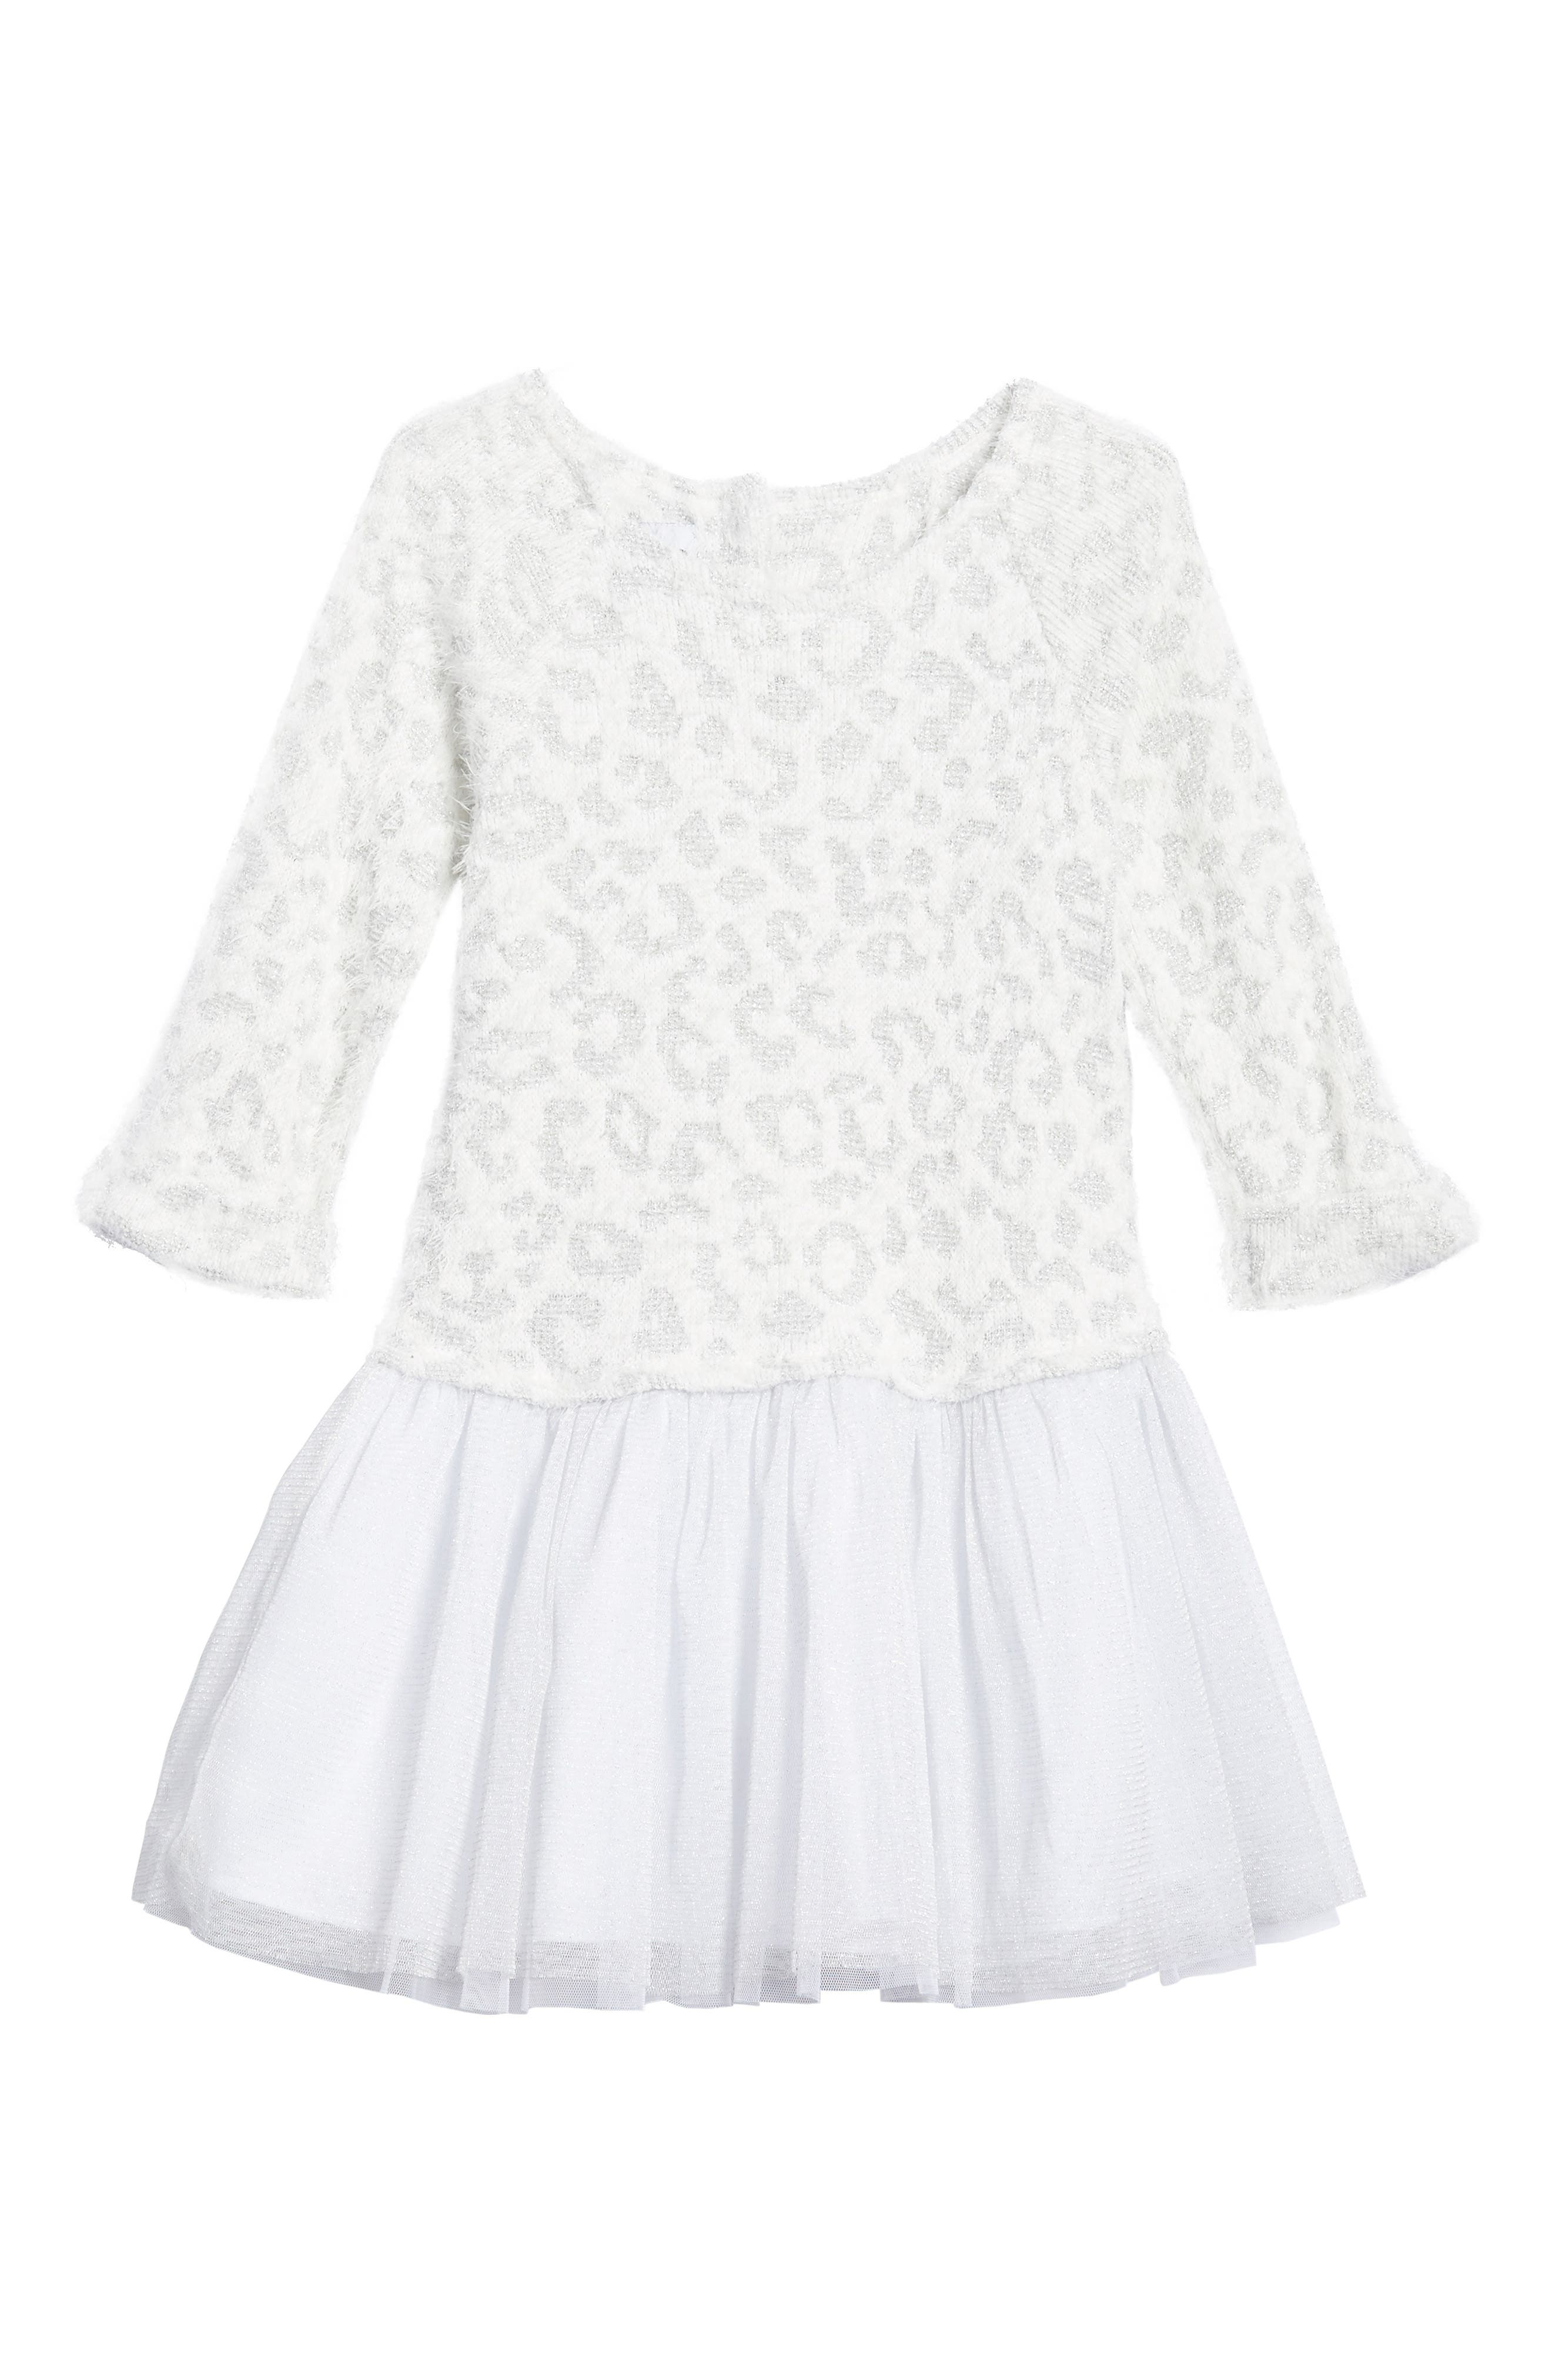 Animal Print Sweater Tutu Dress,                         Main,                         color, White/ Silver